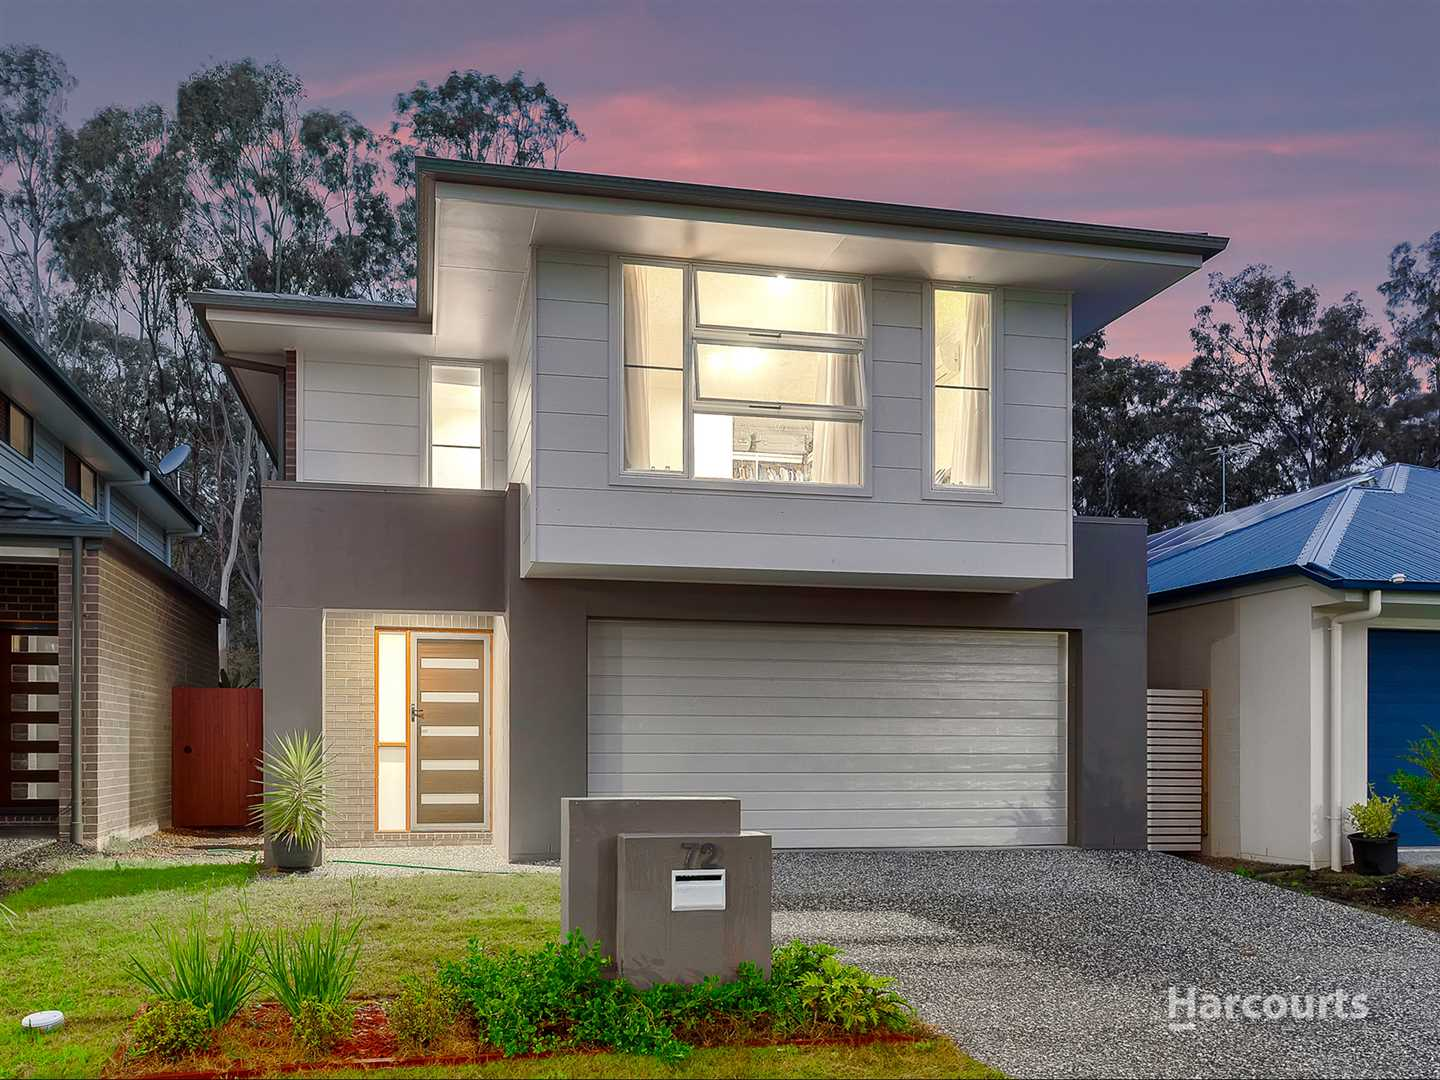 Parkside living with 209m2 under the roof!